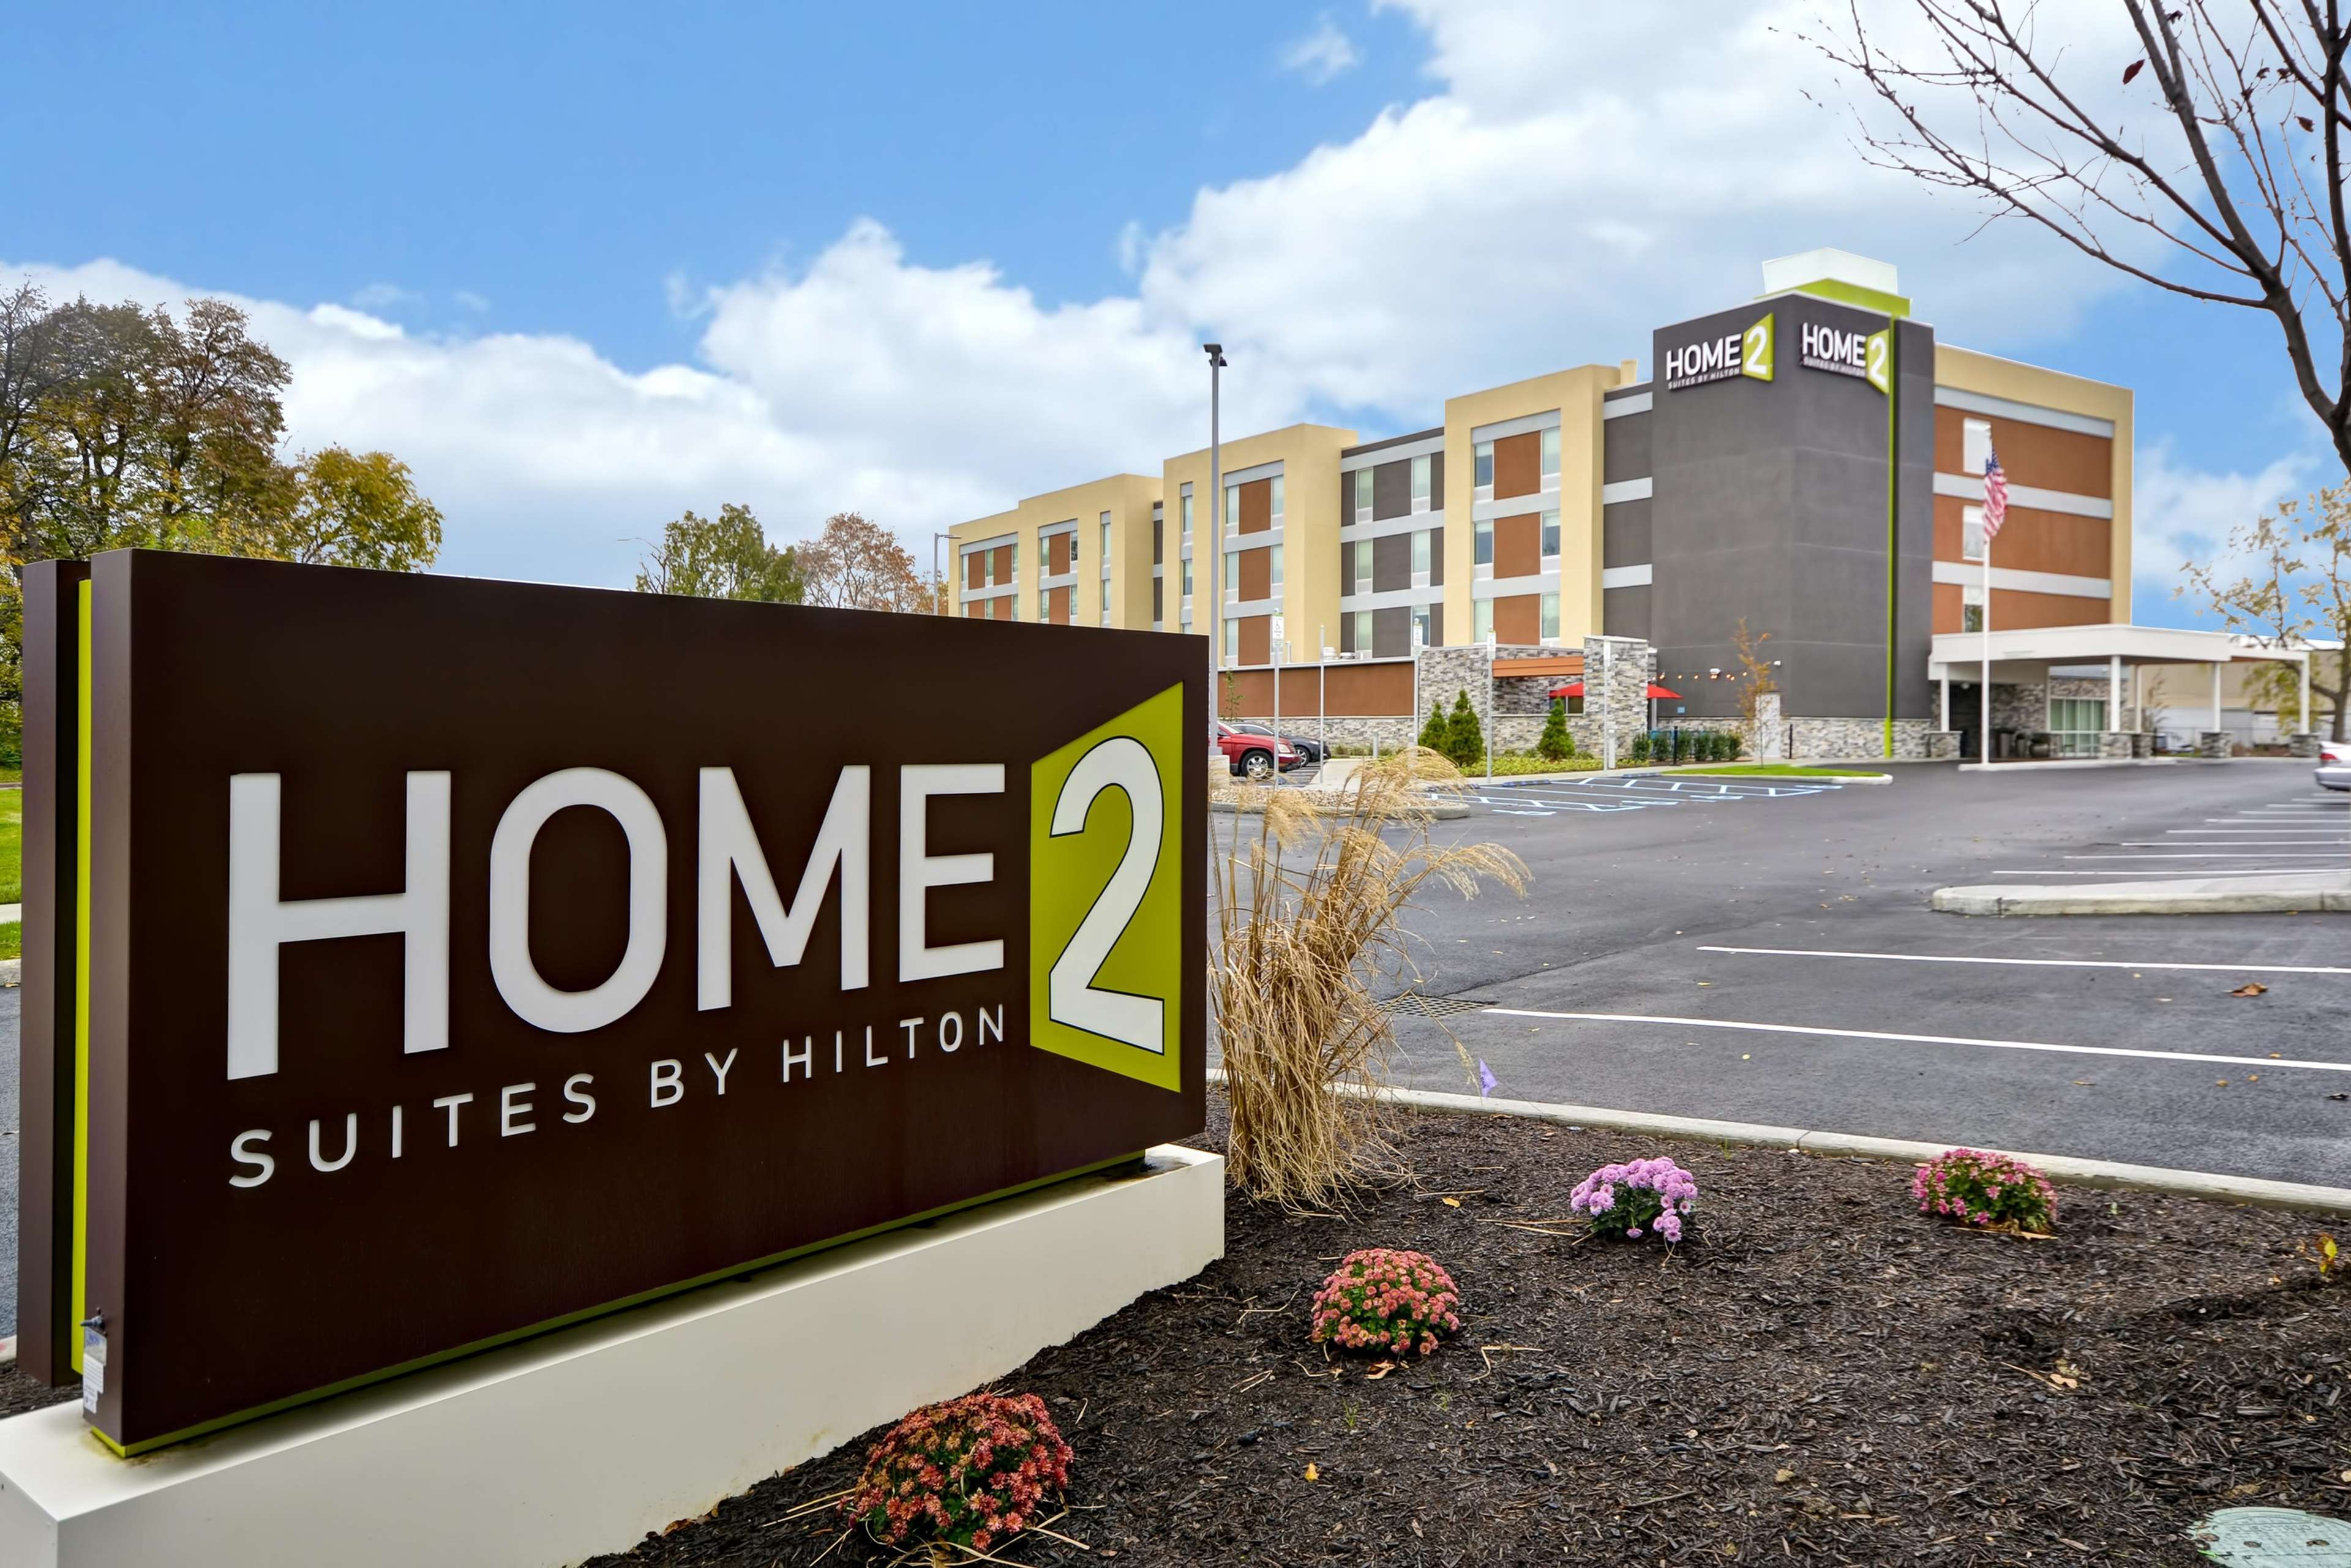 Home2 Suites By Hilton Maumee Toledo image 9